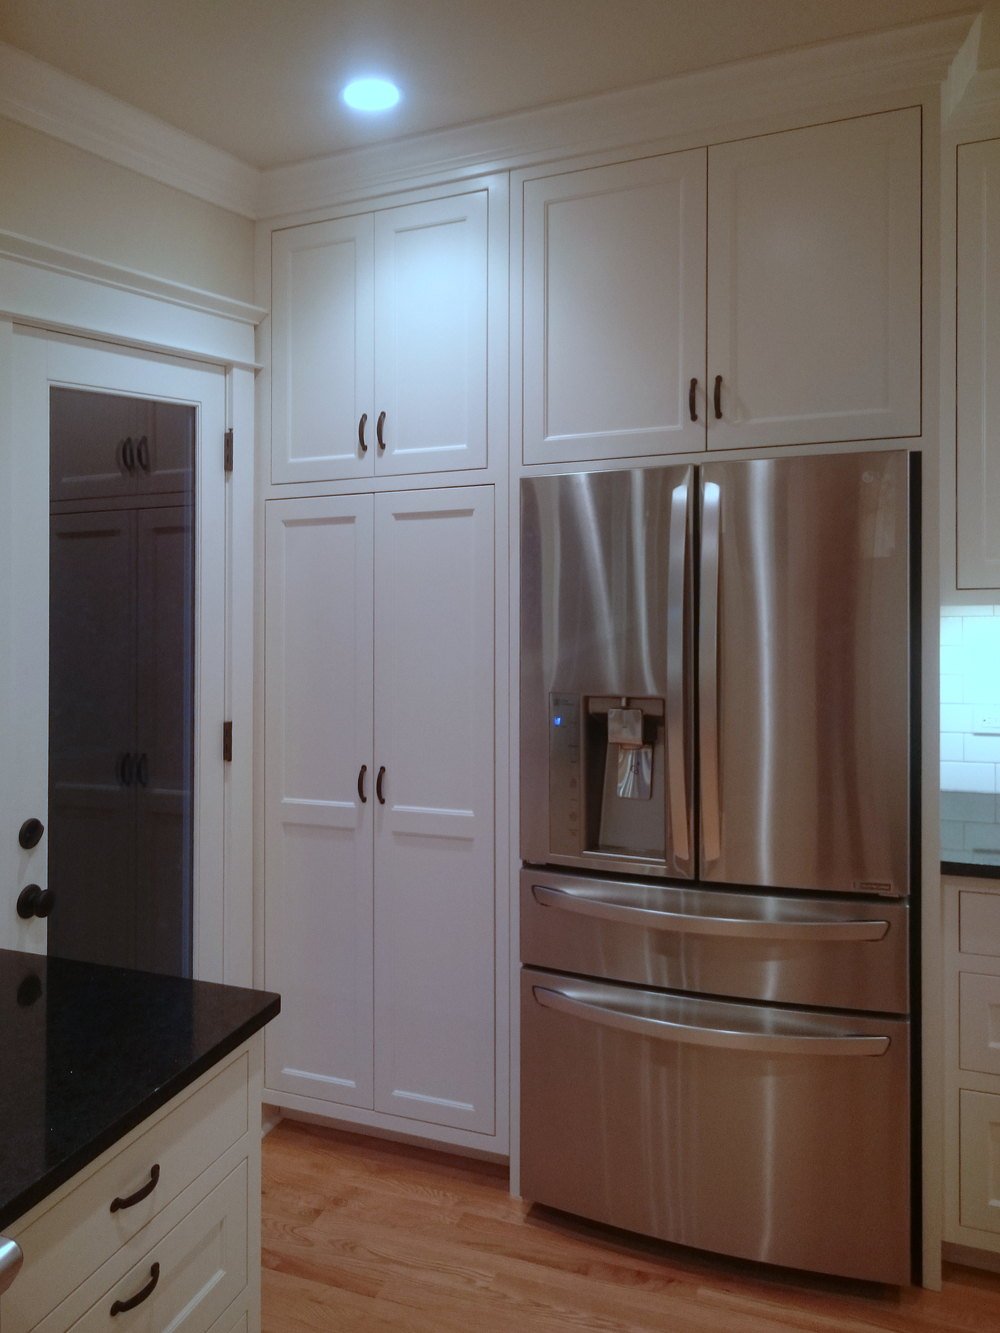 Pantry Cabinet and Refrigerator